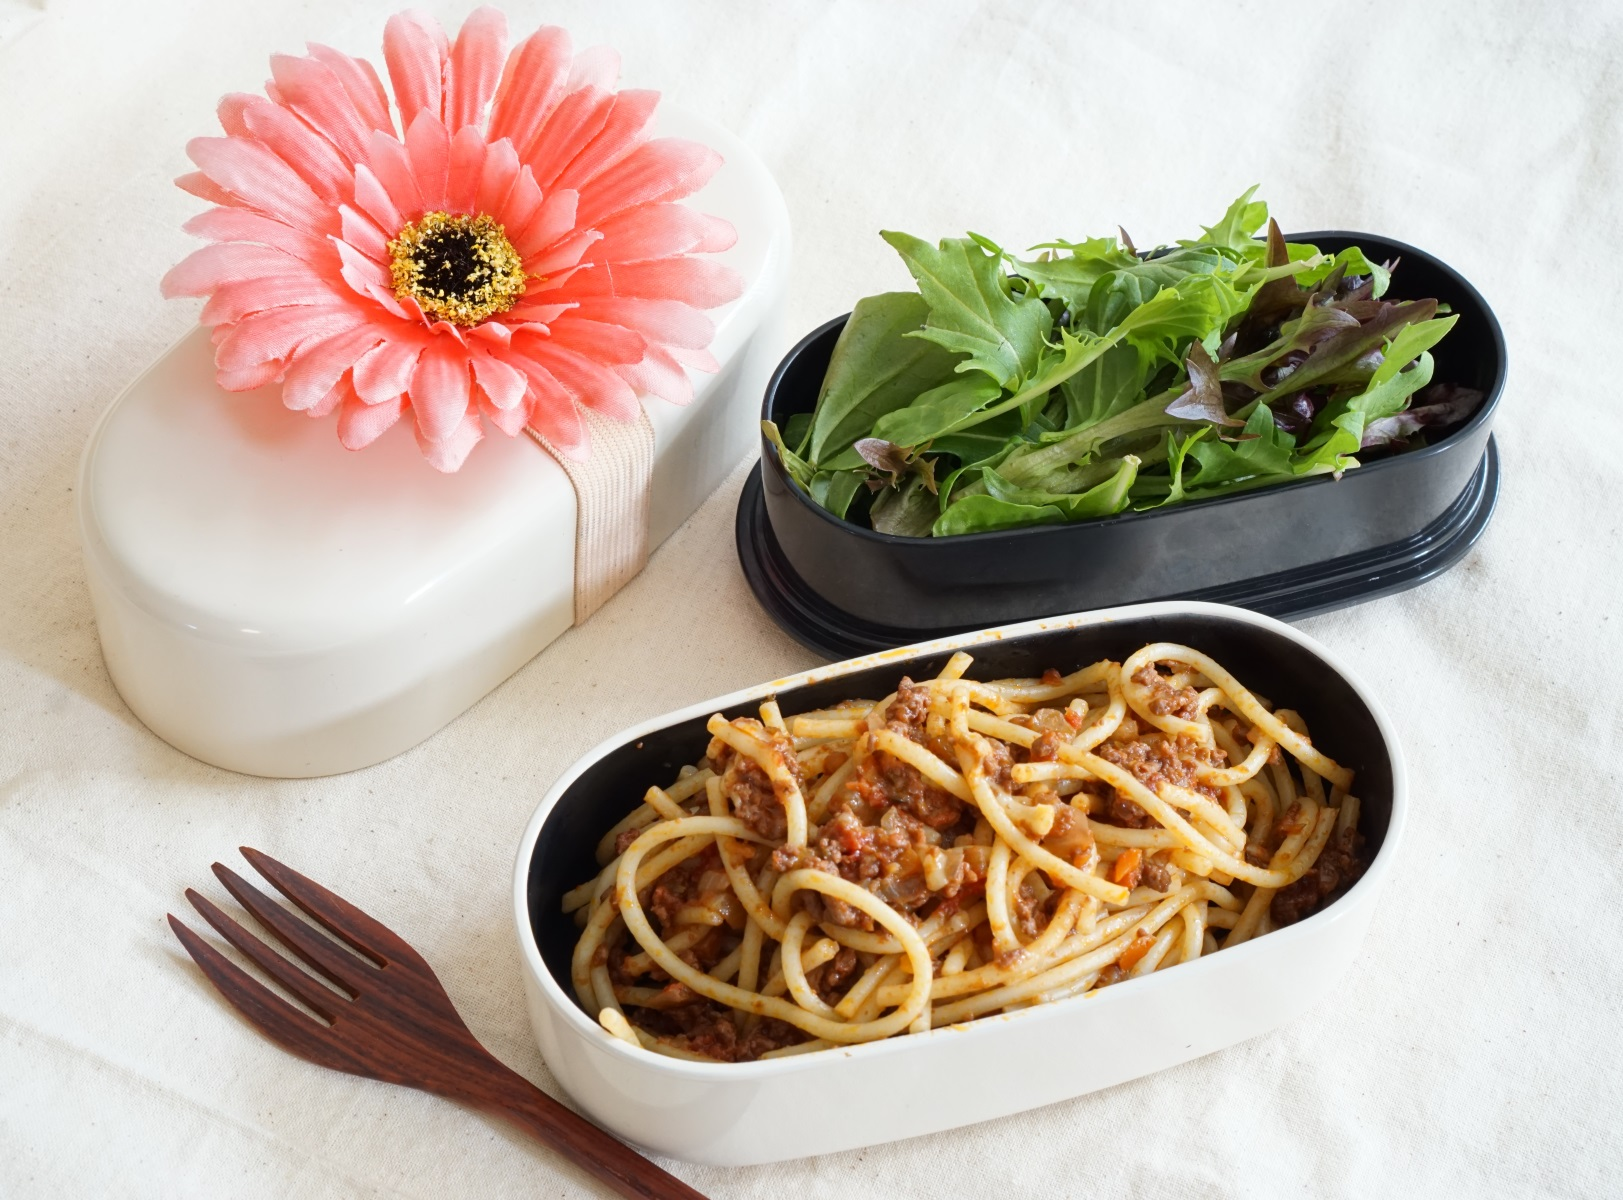 Spaghetti Bolognese and salad.this is leftovers of dinner yesterday.